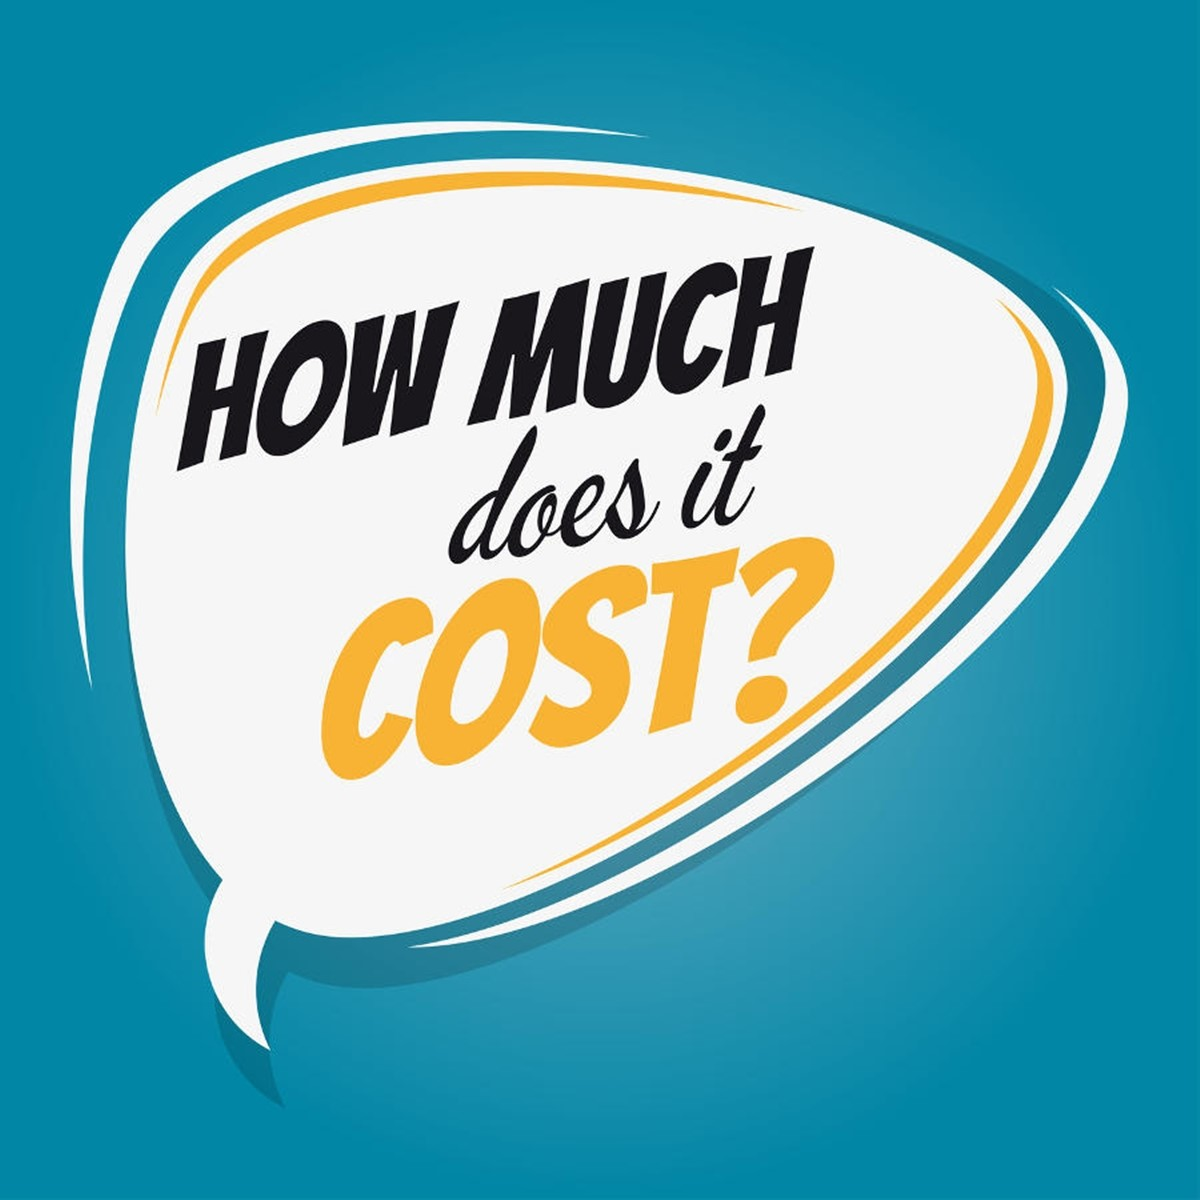 How much does it cost with electronic check